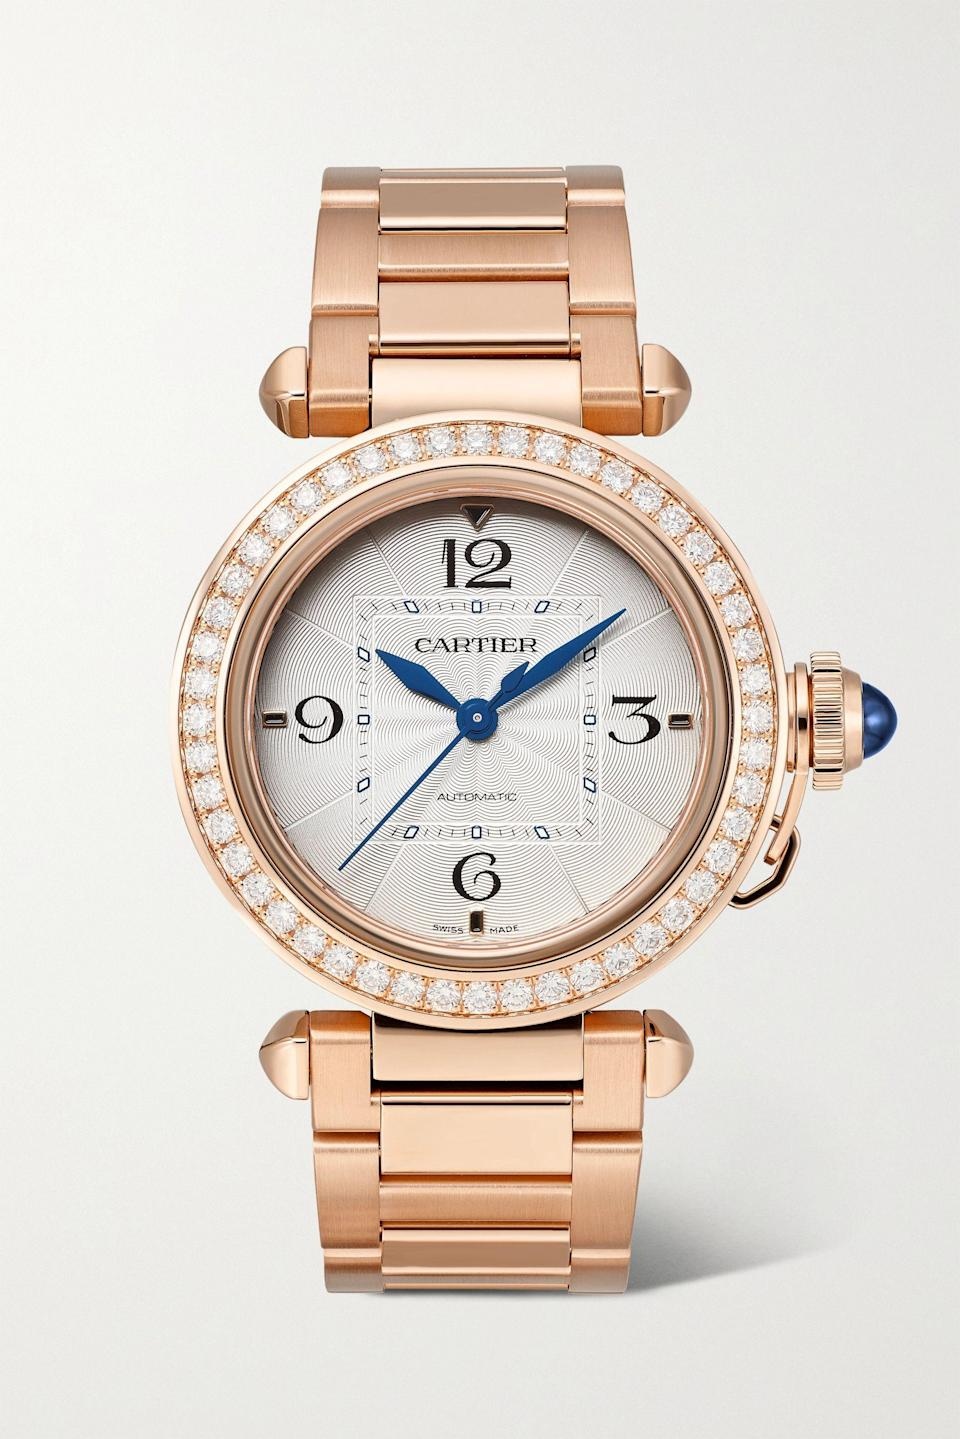 "<p><strong>Cartier</strong></p><p>net-a-porter.com</p><p><strong>$38500.00</strong></p><p><a href=""https://go.redirectingat.com?id=74968X1596630&url=https%3A%2F%2Fwww.net-a-porter.com%2Fen-us%2Fshop%2Fproduct%2Fcartier%2Fpasha-de-cartier-automatic-35mm-18-karat-rose-gold-alligator-and-diamond-watch%2F1308894&sref=https%3A%2F%2Fwww.harpersbazaar.com%2Ffashion%2Ftrends%2Fg36005306%2Fsummer-2021-jewelry-trends%2F"" rel=""nofollow noopener"" target=""_blank"" data-ylk=""slk:Shop Now"" class=""link rapid-noclick-resp"">Shop Now</a></p><p>Time well spent. </p>"